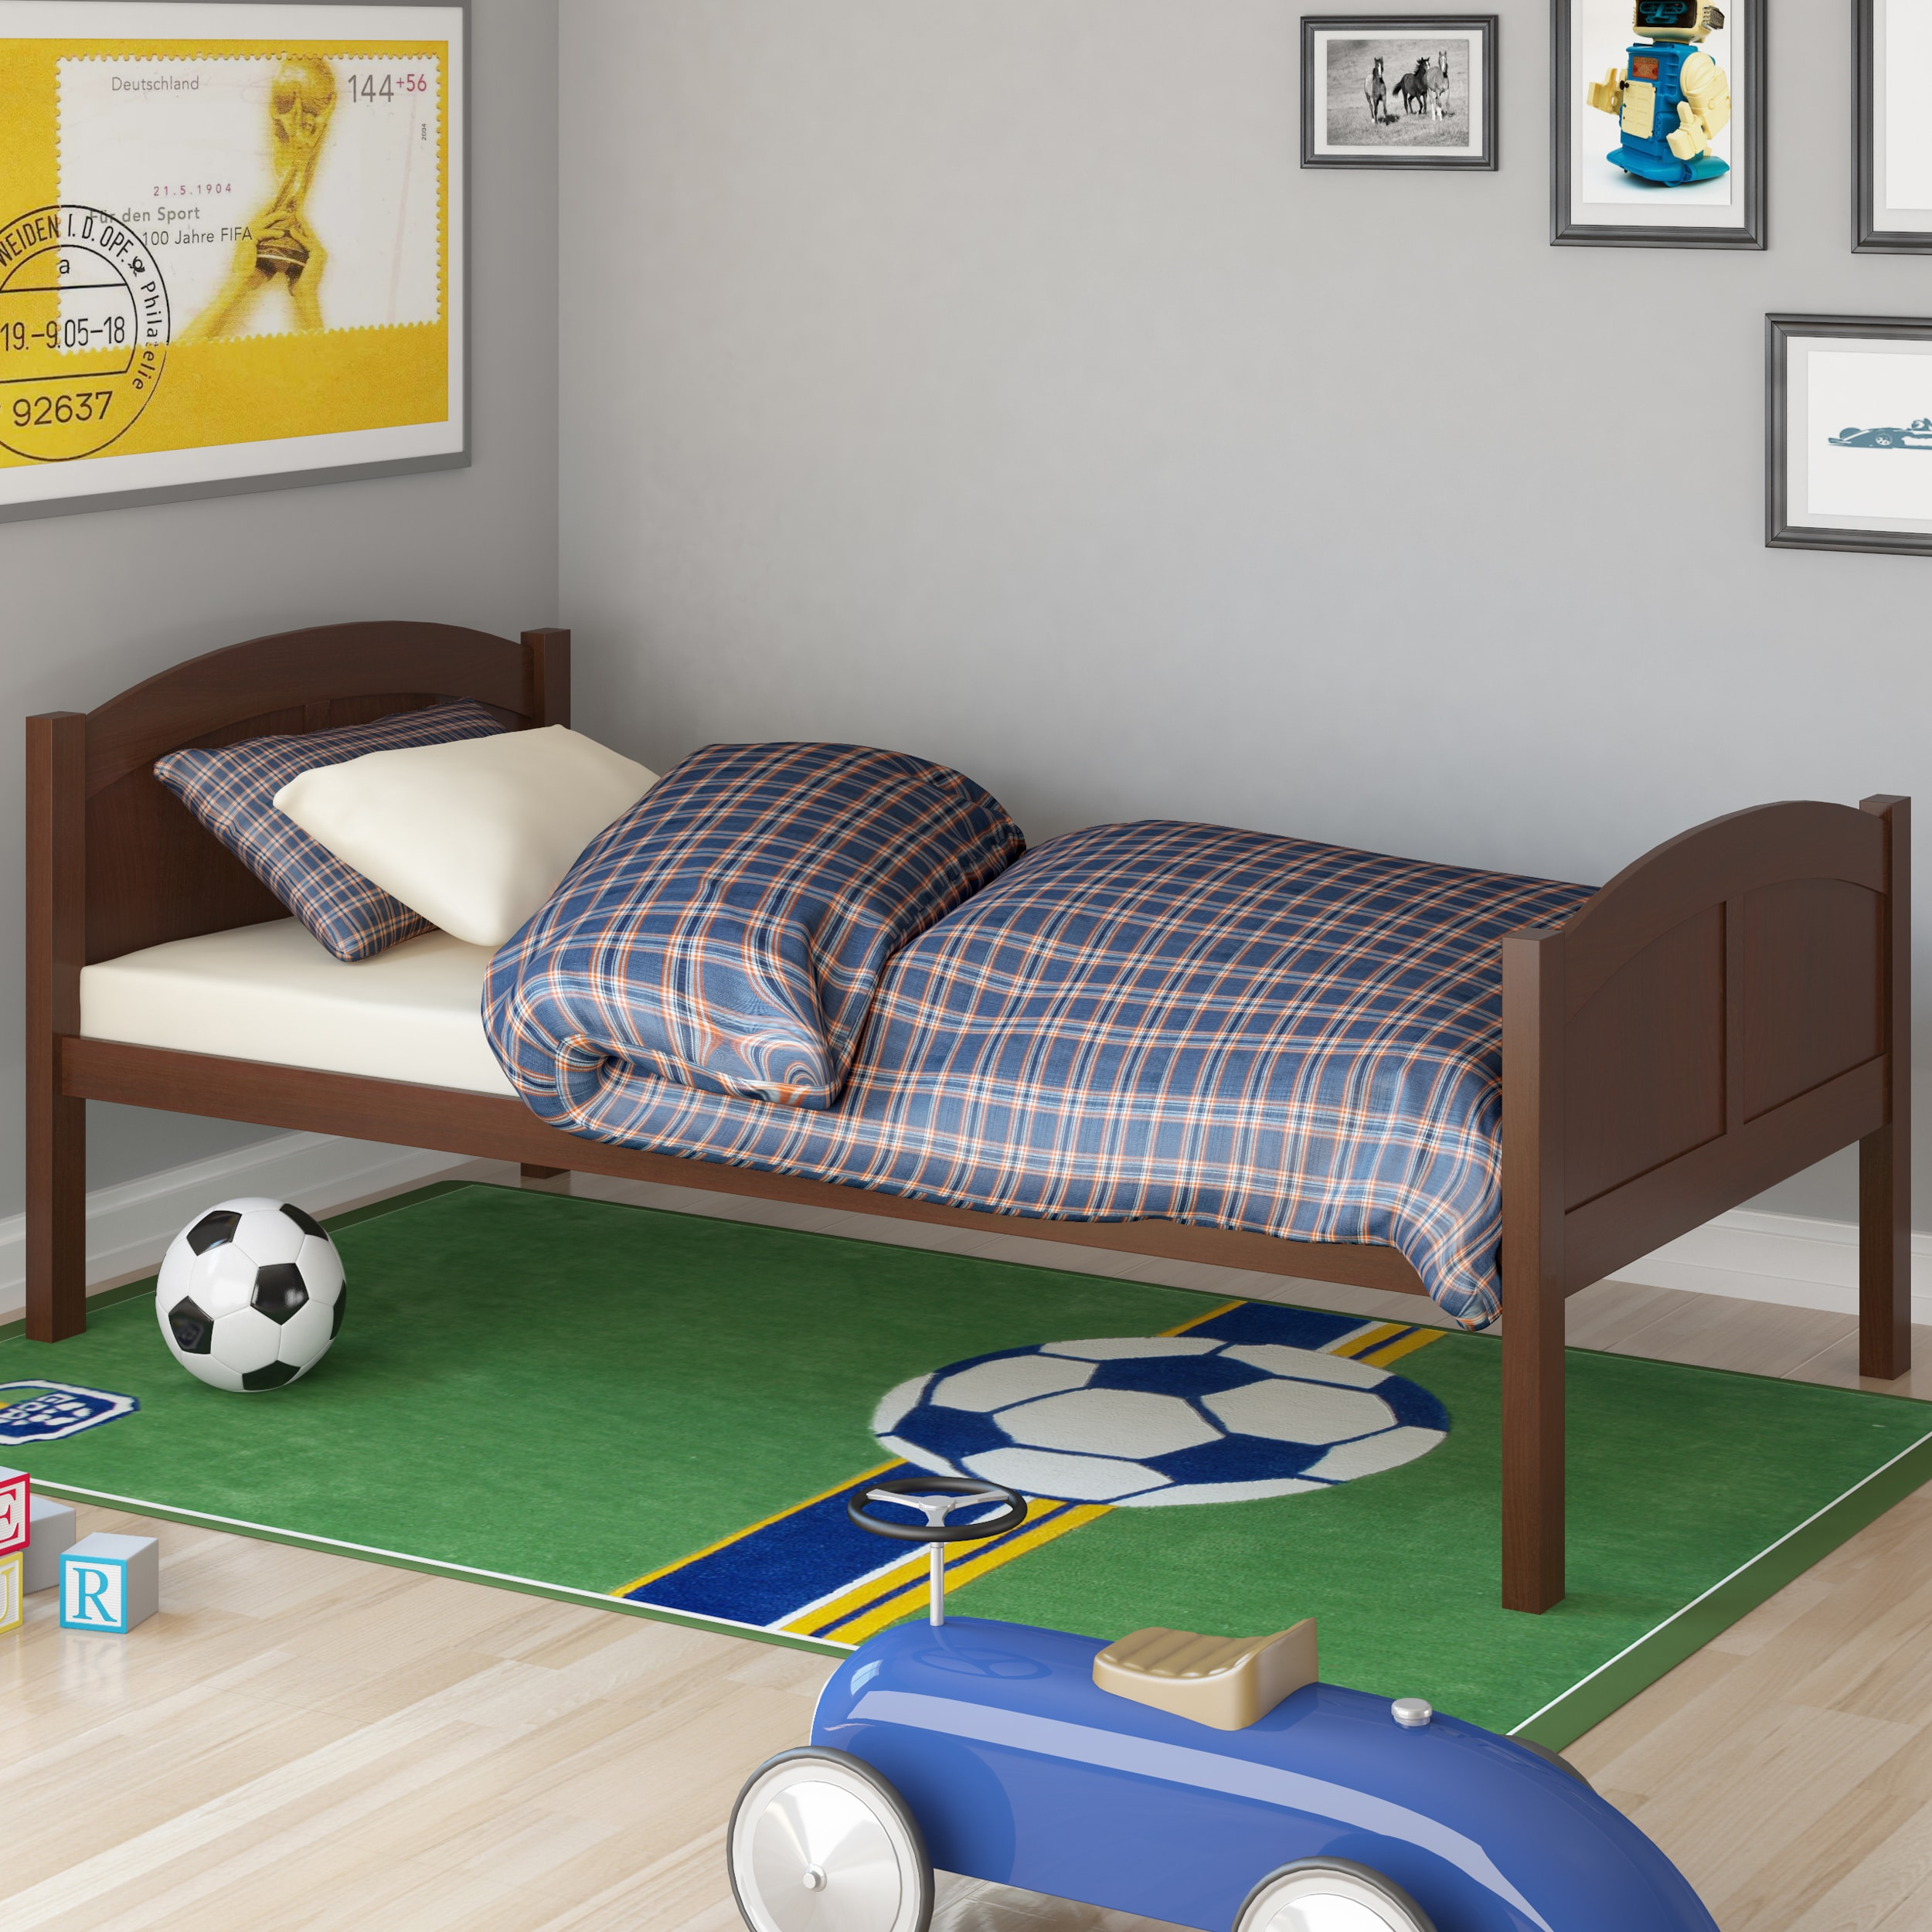 CorLiving Concordia Espresso Solid Wood Single Bed at Sears.com